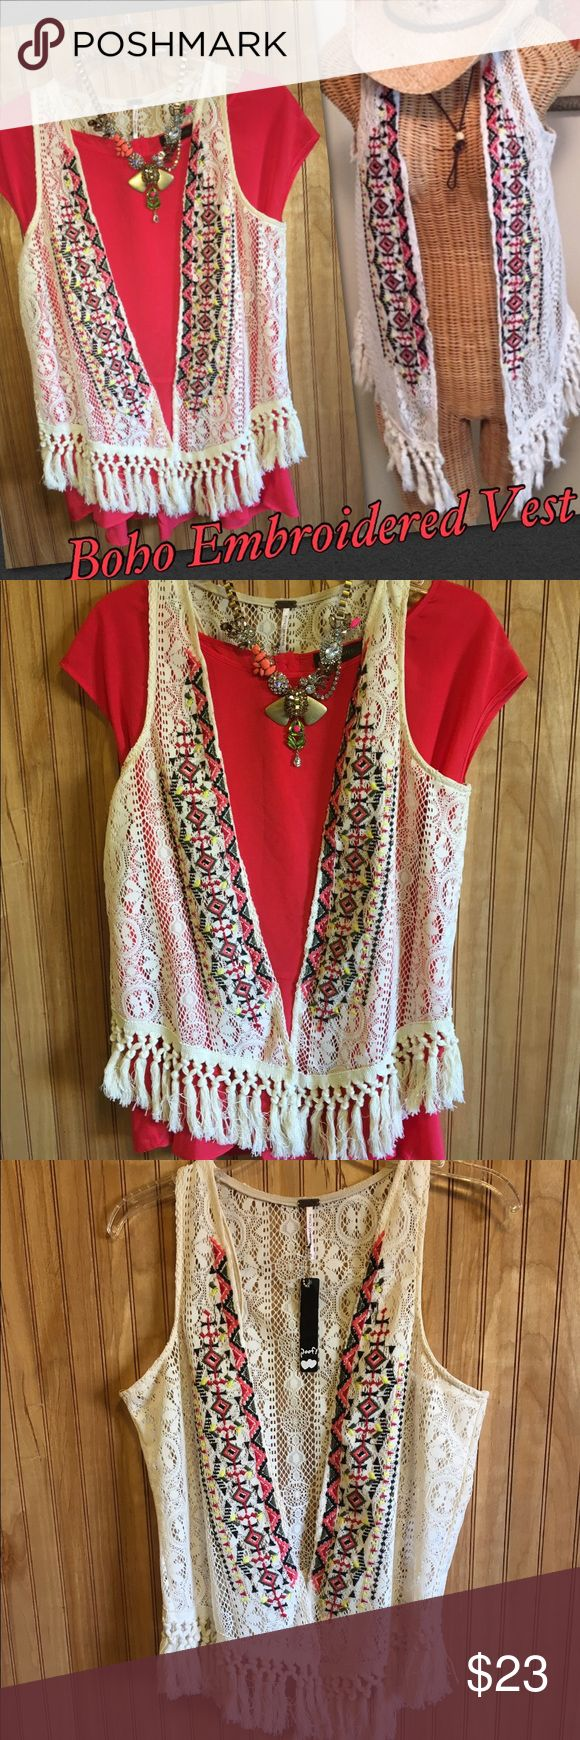 🆕Chic Boho Embroidered Vest Sz S & L Super cute Embroidered lace vest that's perfect for festivals, going out, or just a day on the town. Lightweight lace with Embroidered edges and tassels on the bottom. Boutique brand similar to Free People. NWT. Poof! Jackets & Coats Vests